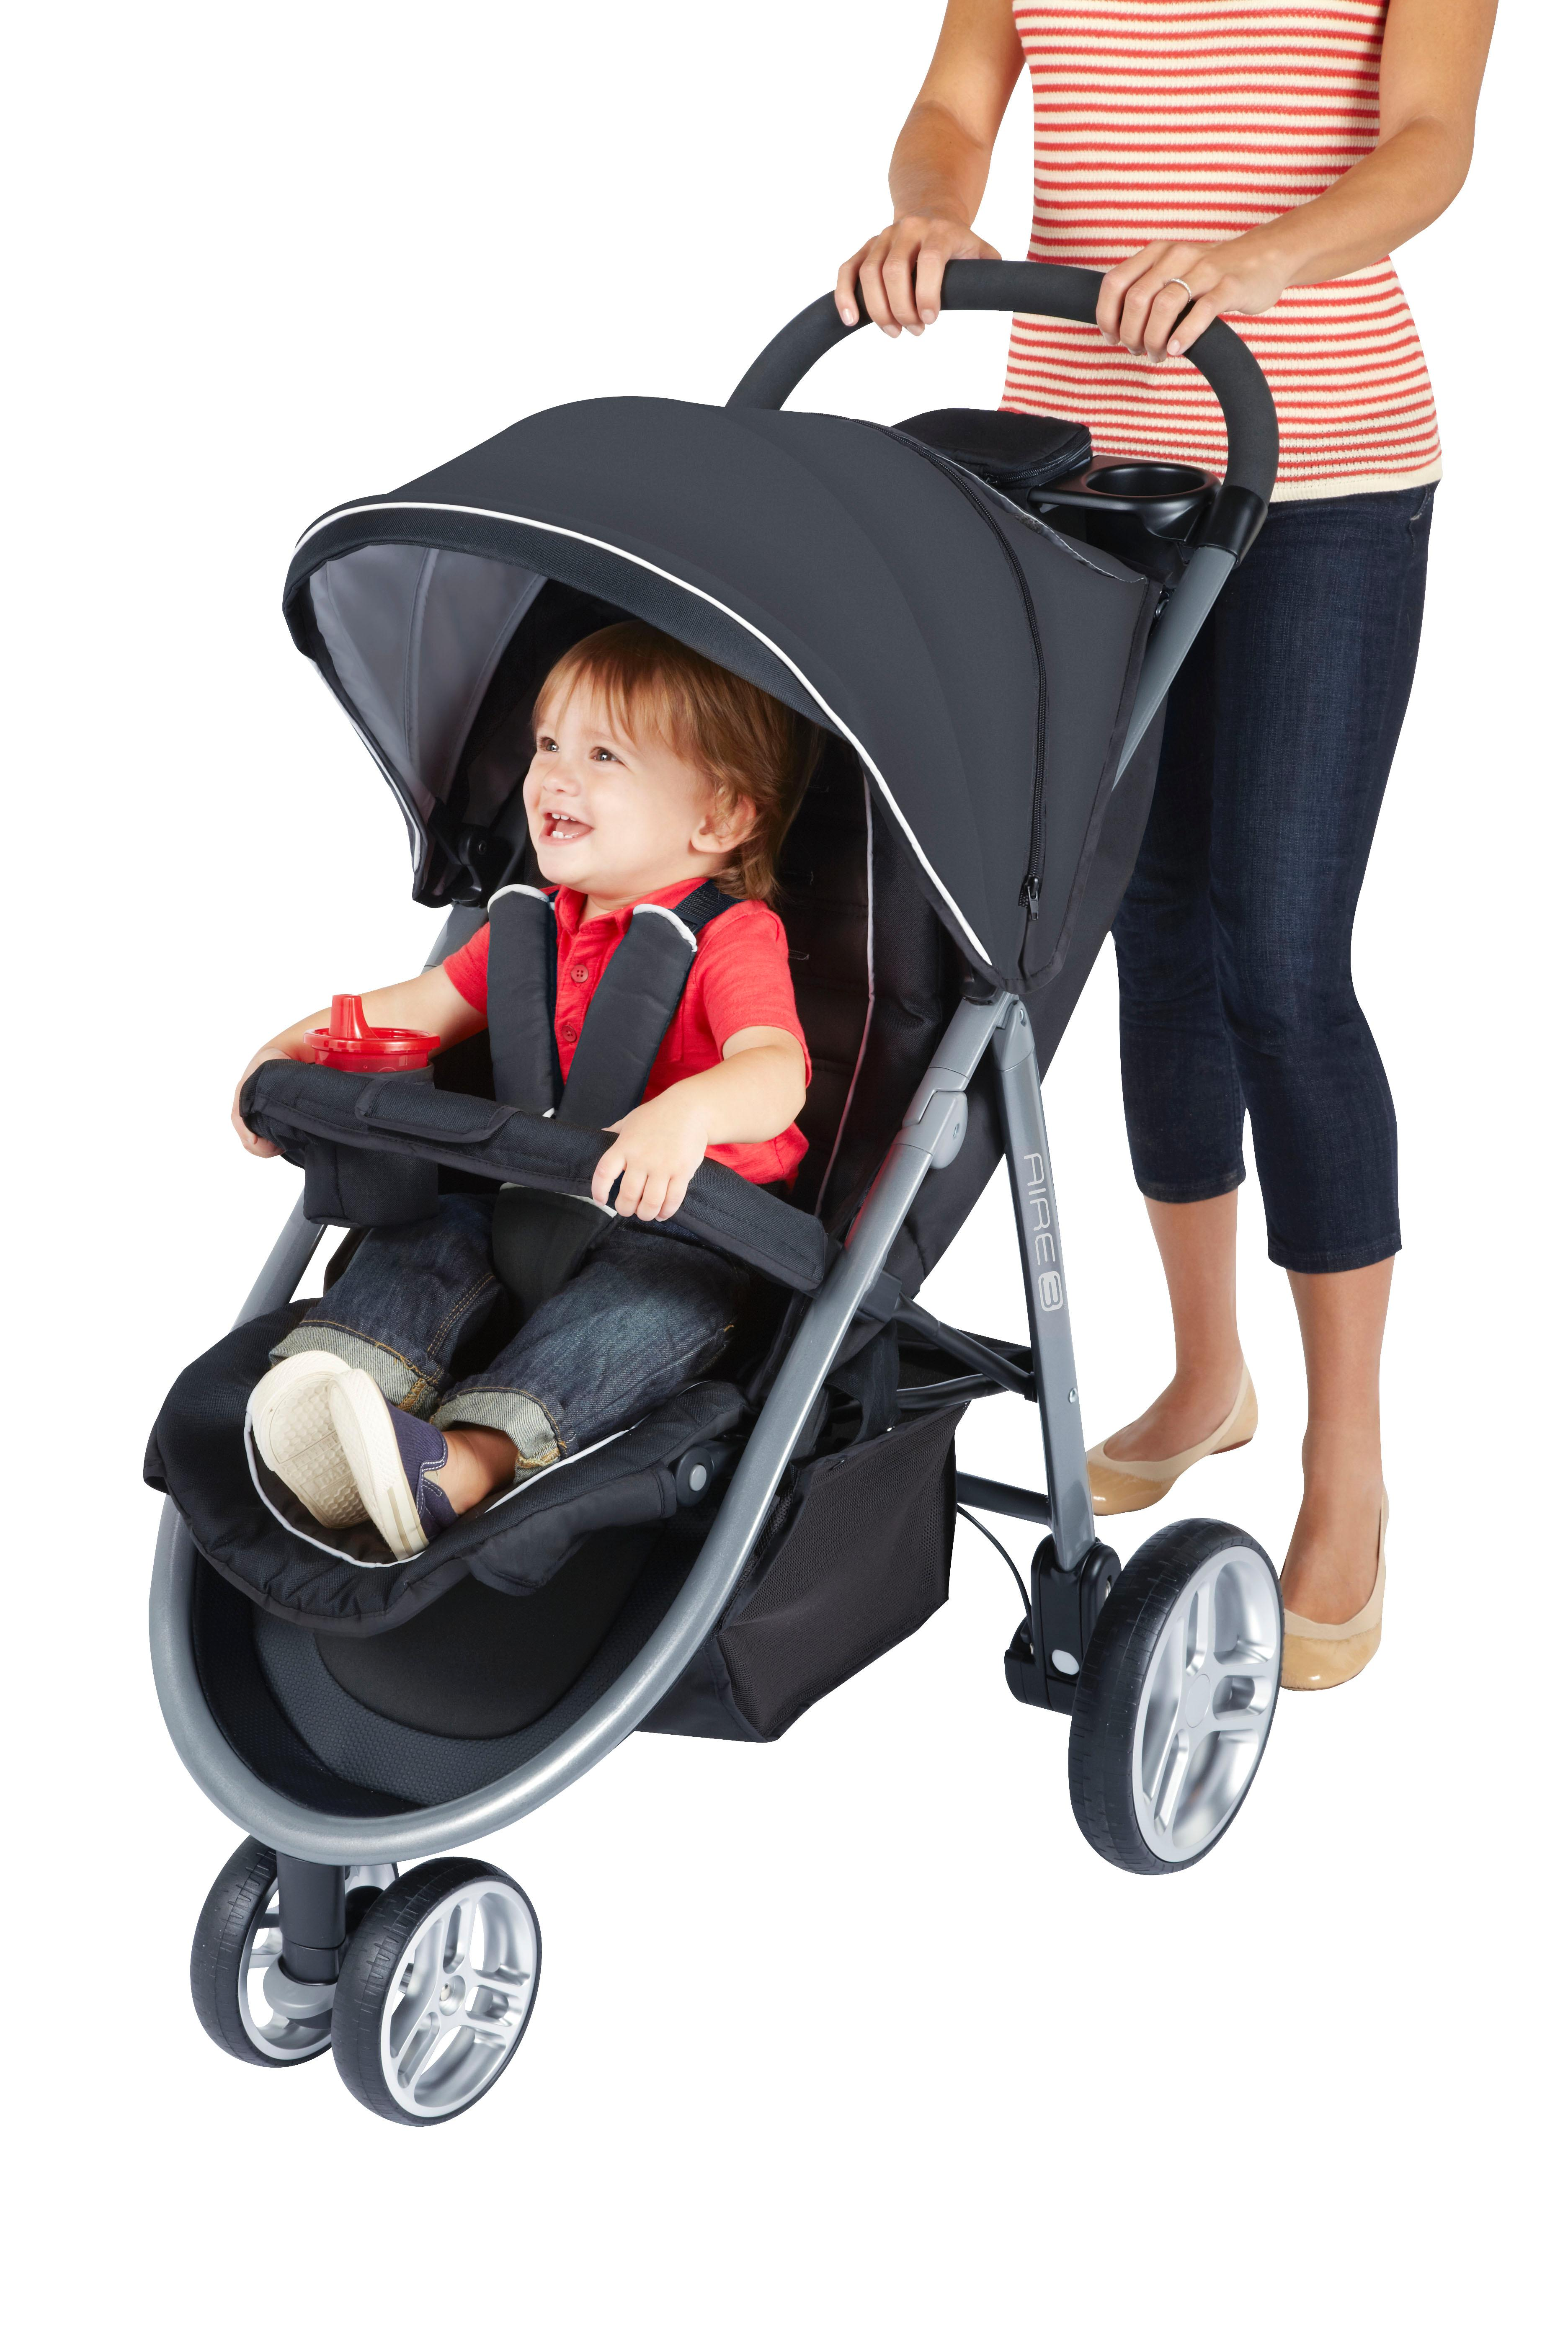 Amazon.com : Graco Aire3 Click Connect Travel System